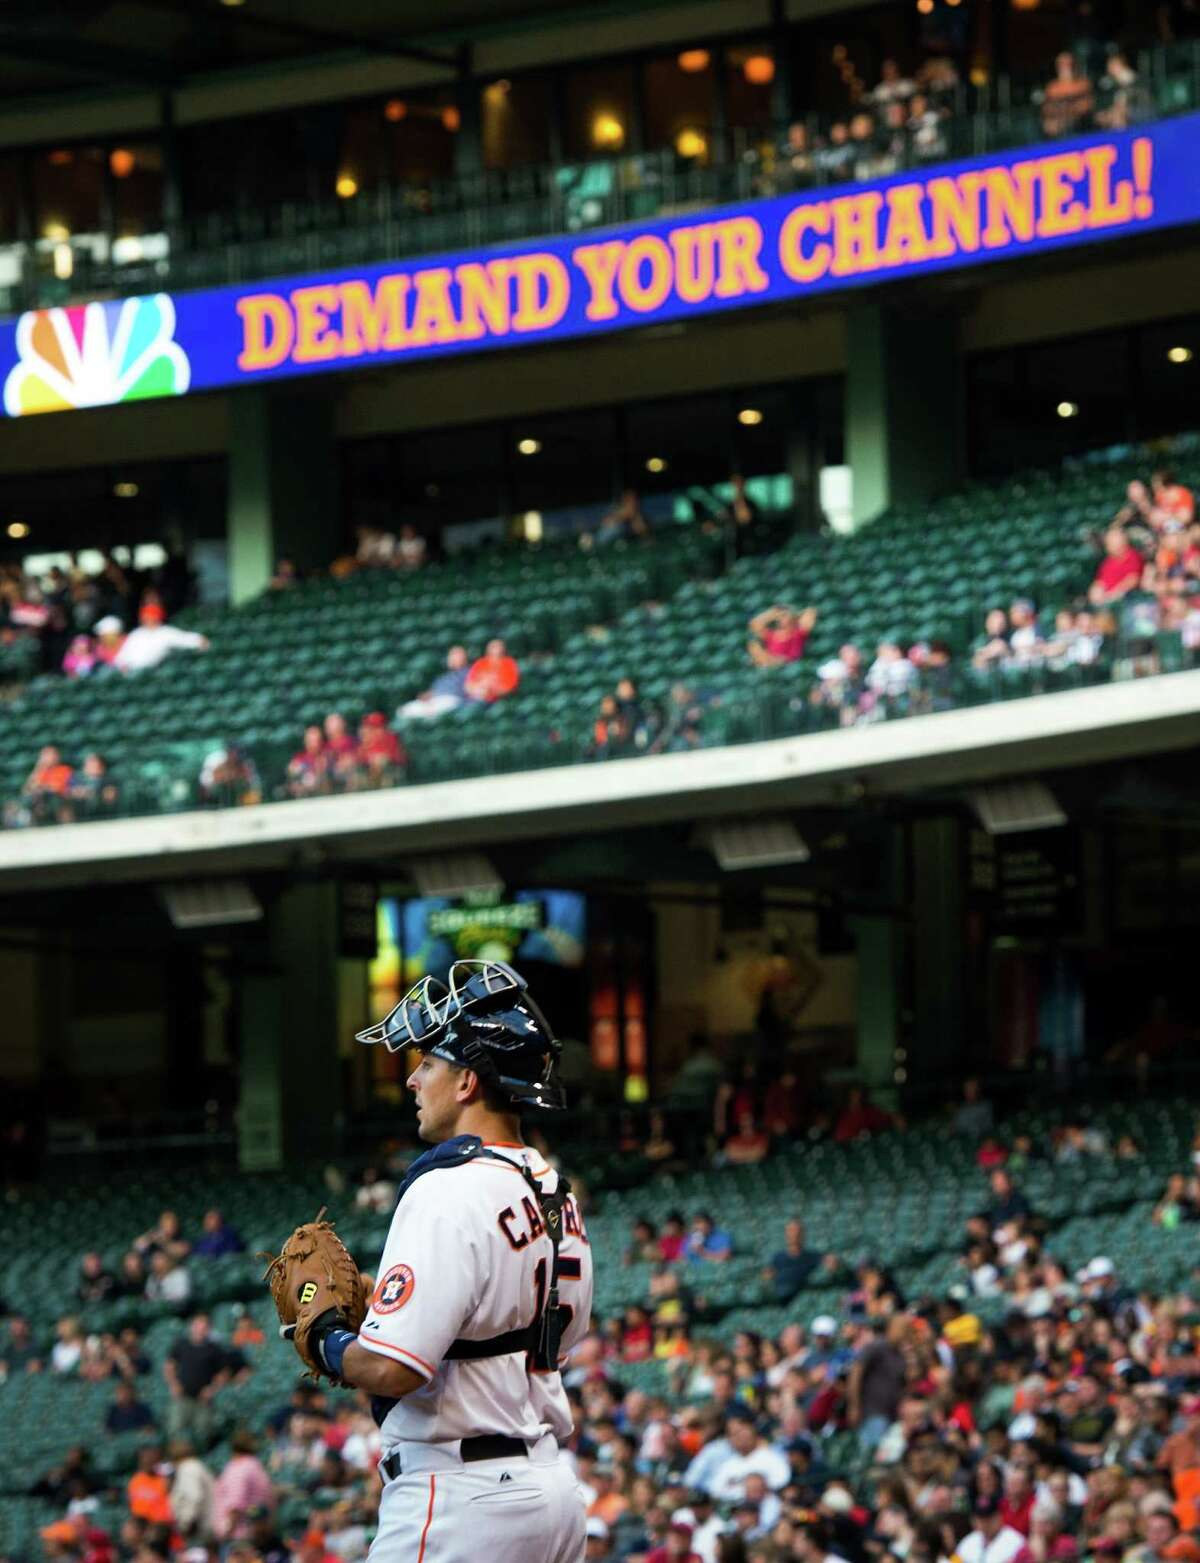 The Astros have become an afterthought to many fans, with their TV games drawing an average audience of about 10,000 households.